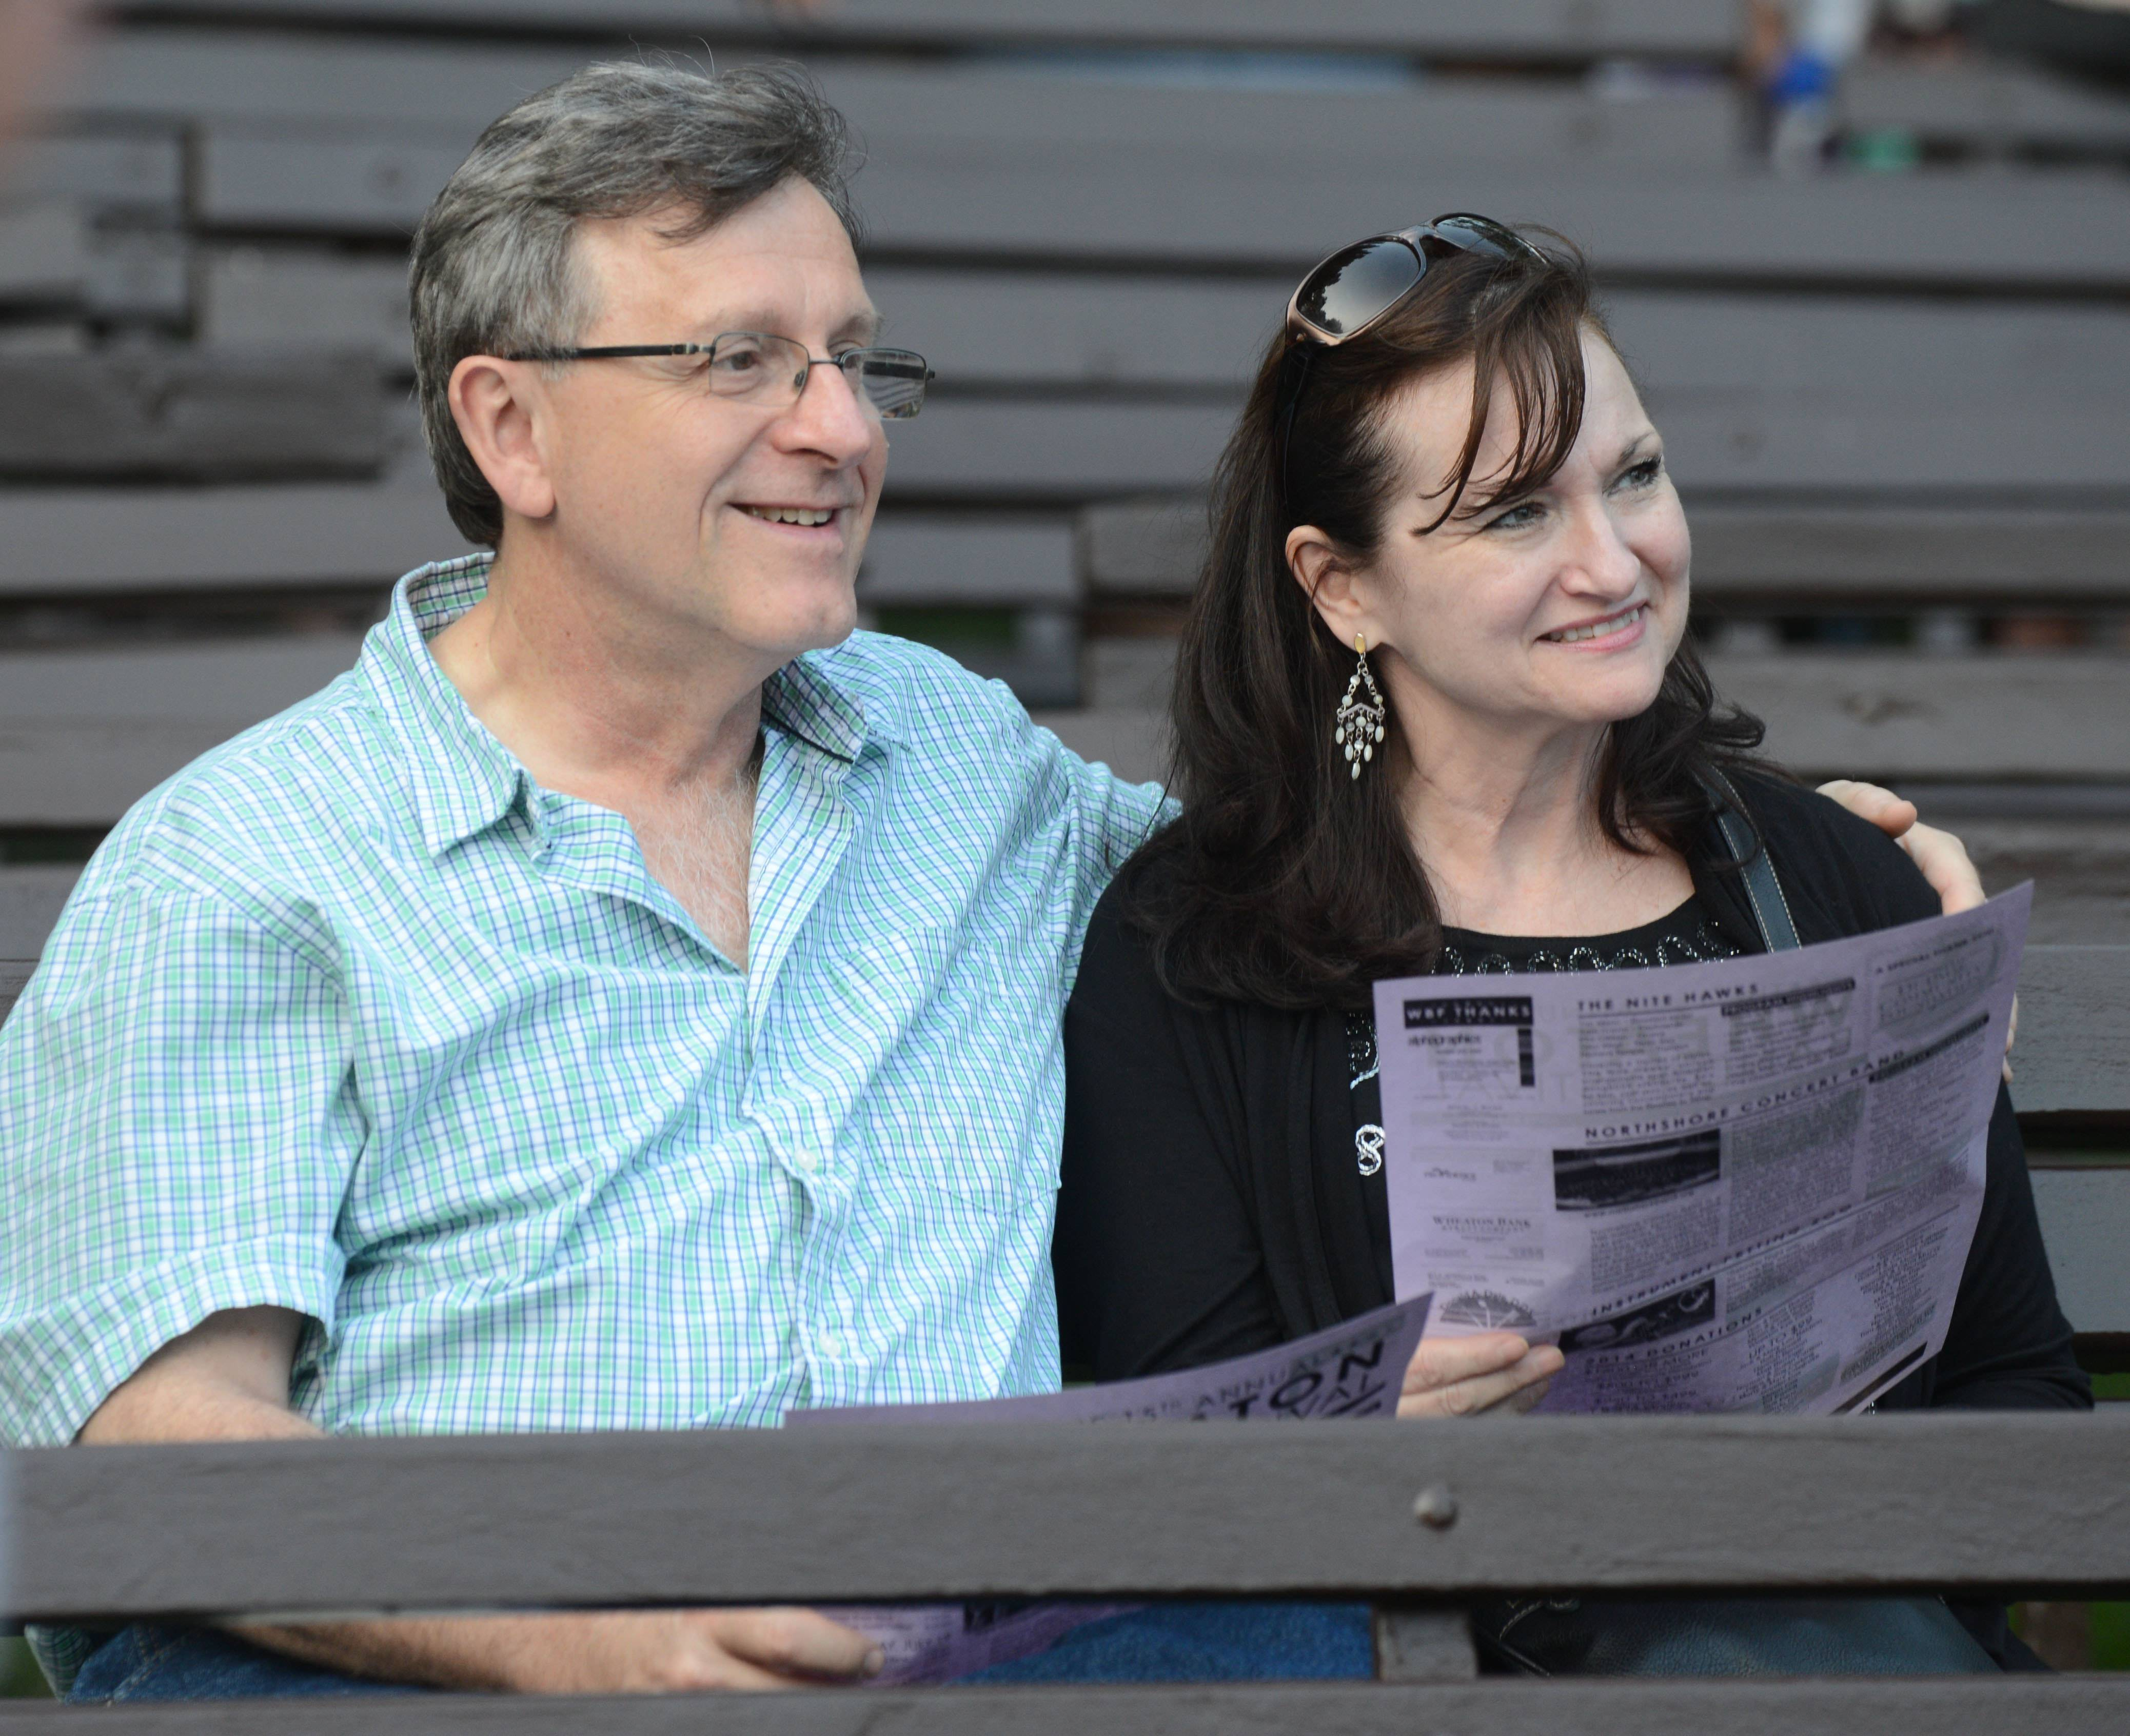 Paul Michna/pmichna@dailyherald.com Marc and Denise Donatelle of Bartlett are all smiles during the 15th annual Wheaton Band Festival. The fest opened Friday night in Memorial Park.